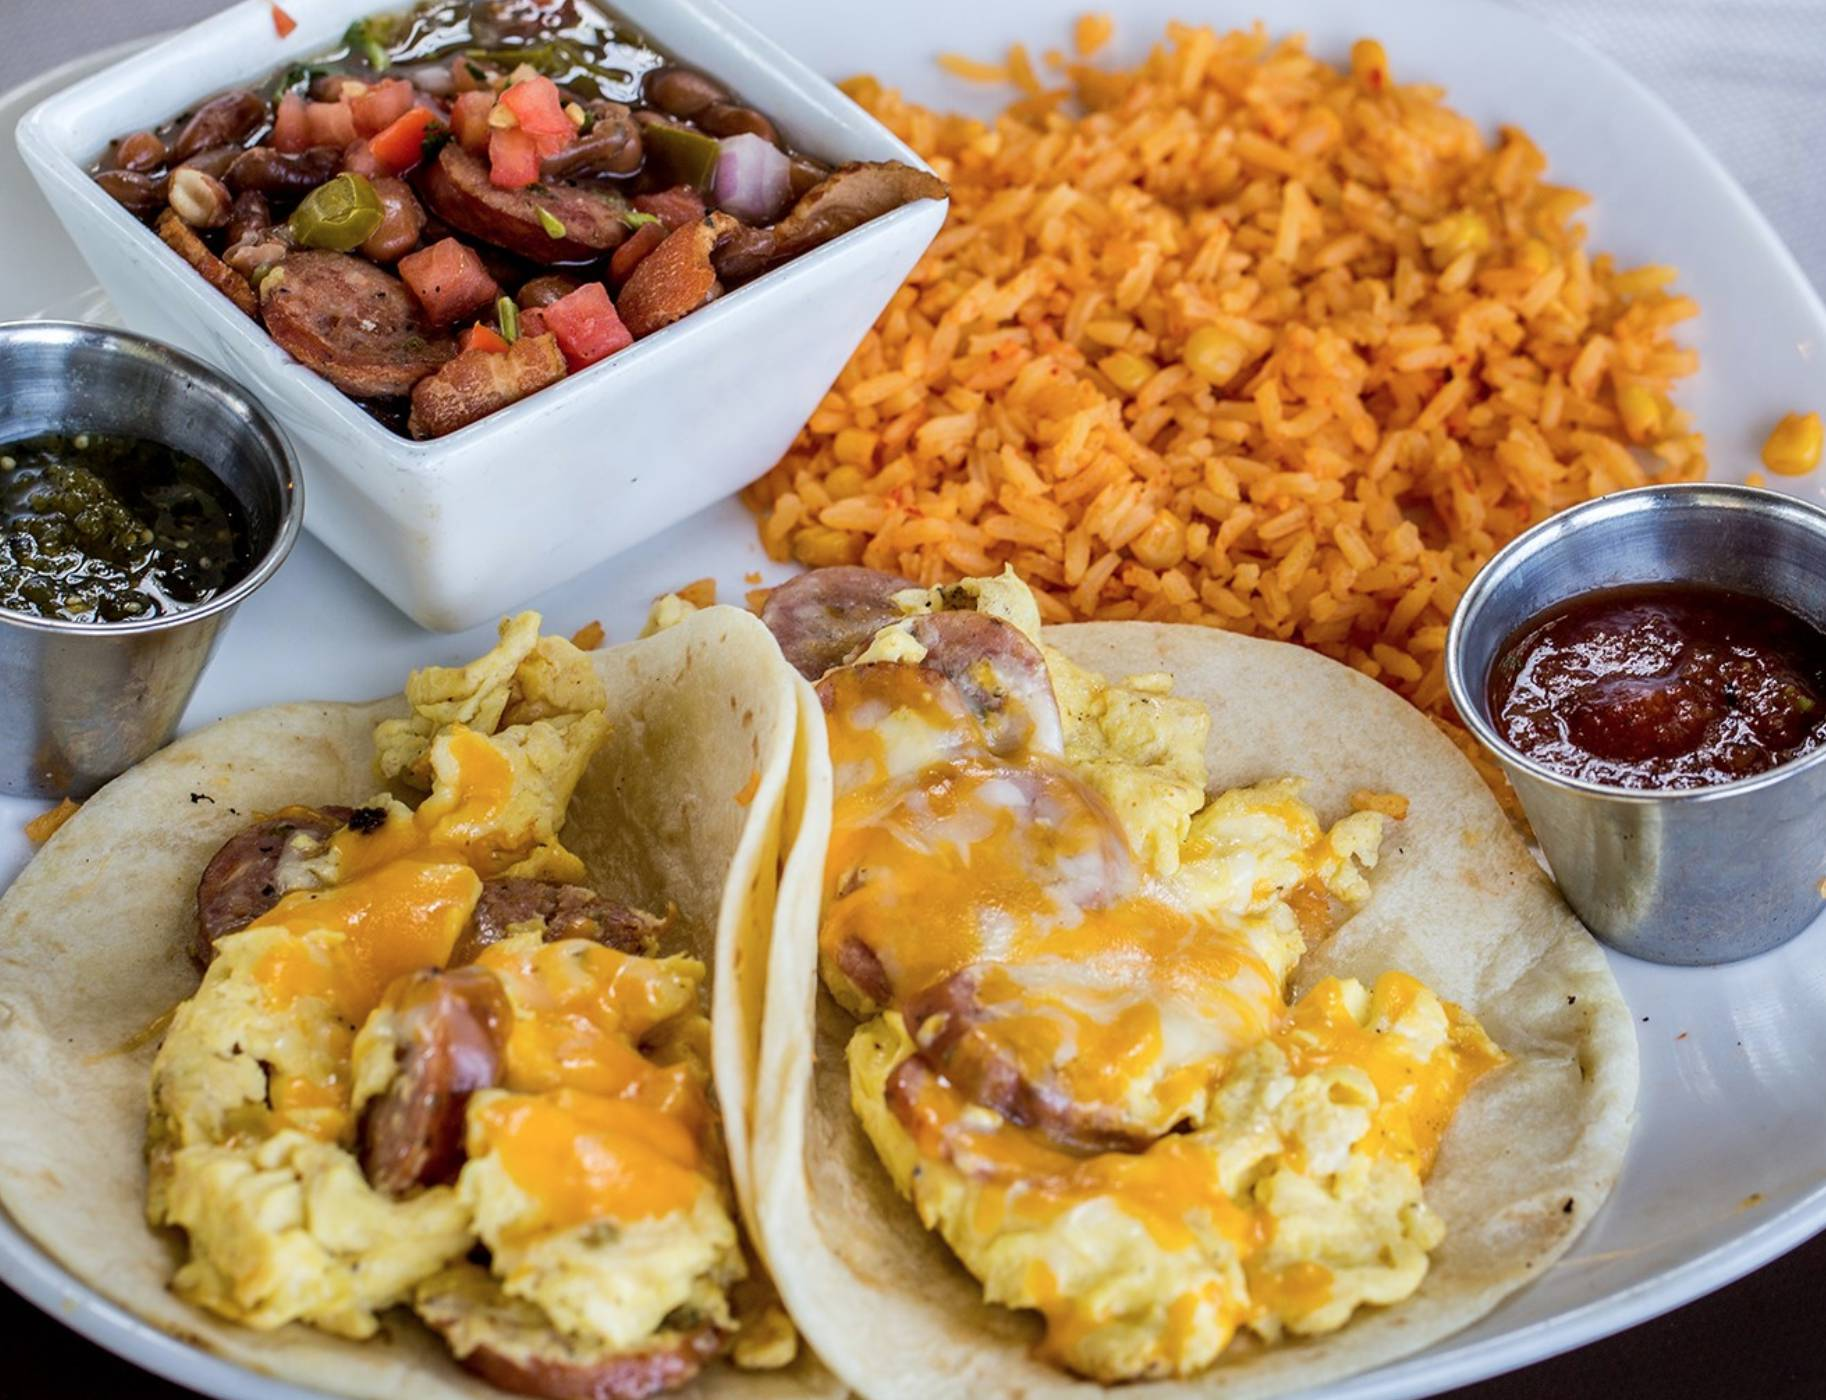 Brunch Buffet (til 3pm) w/ $2 Mimosas